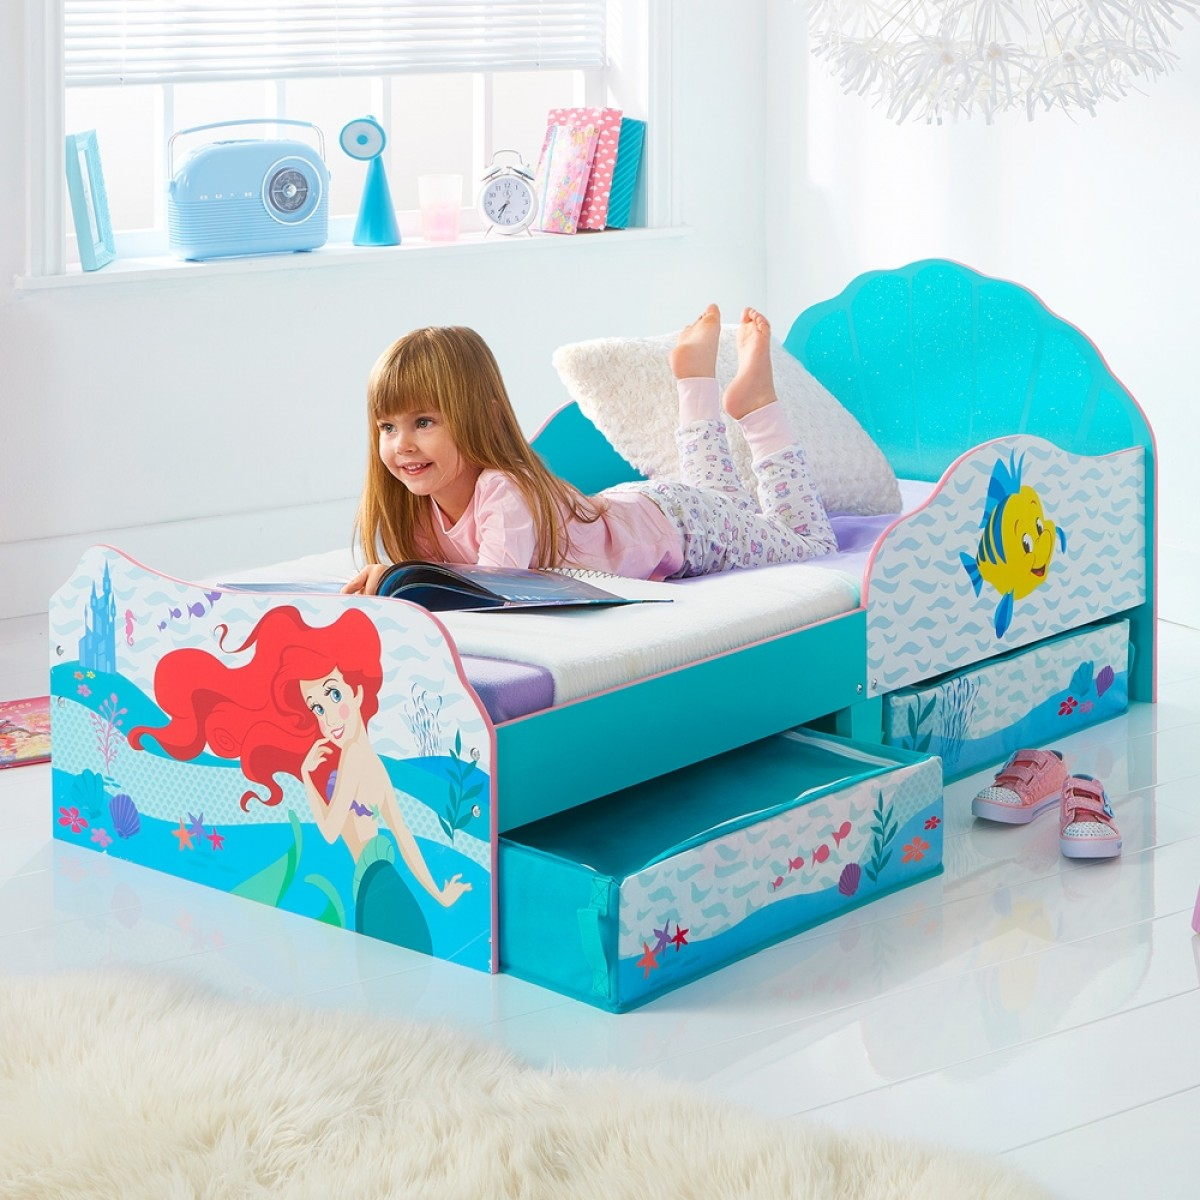 Disney Princess Ariel Toddler Bed